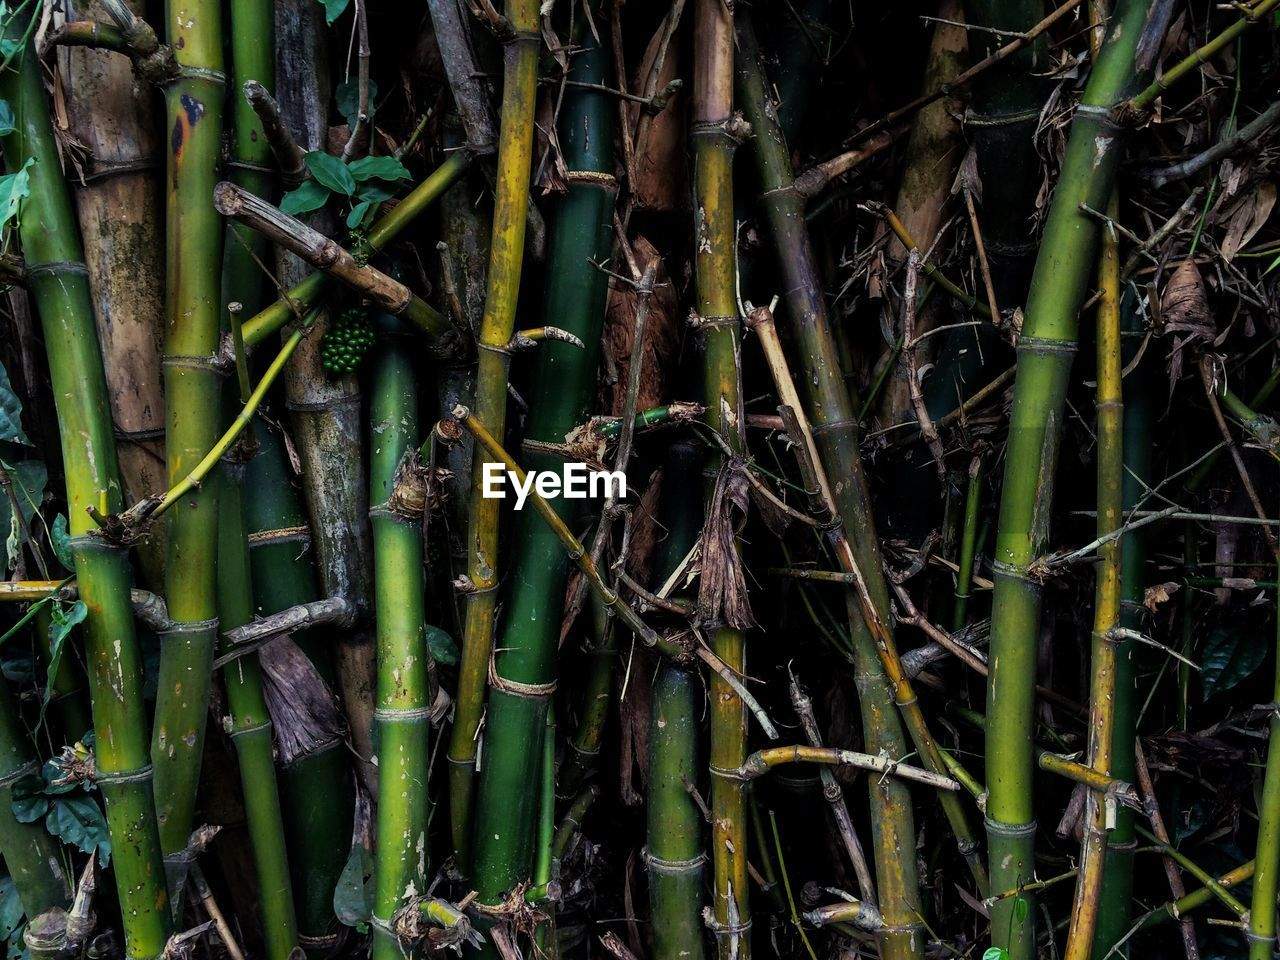 plant, bamboo - plant, bamboo, growth, nature, no people, tree, green color, land, forest, tranquility, beauty in nature, day, outdoors, plant part, close-up, bamboo grove, leaf, field, backgrounds